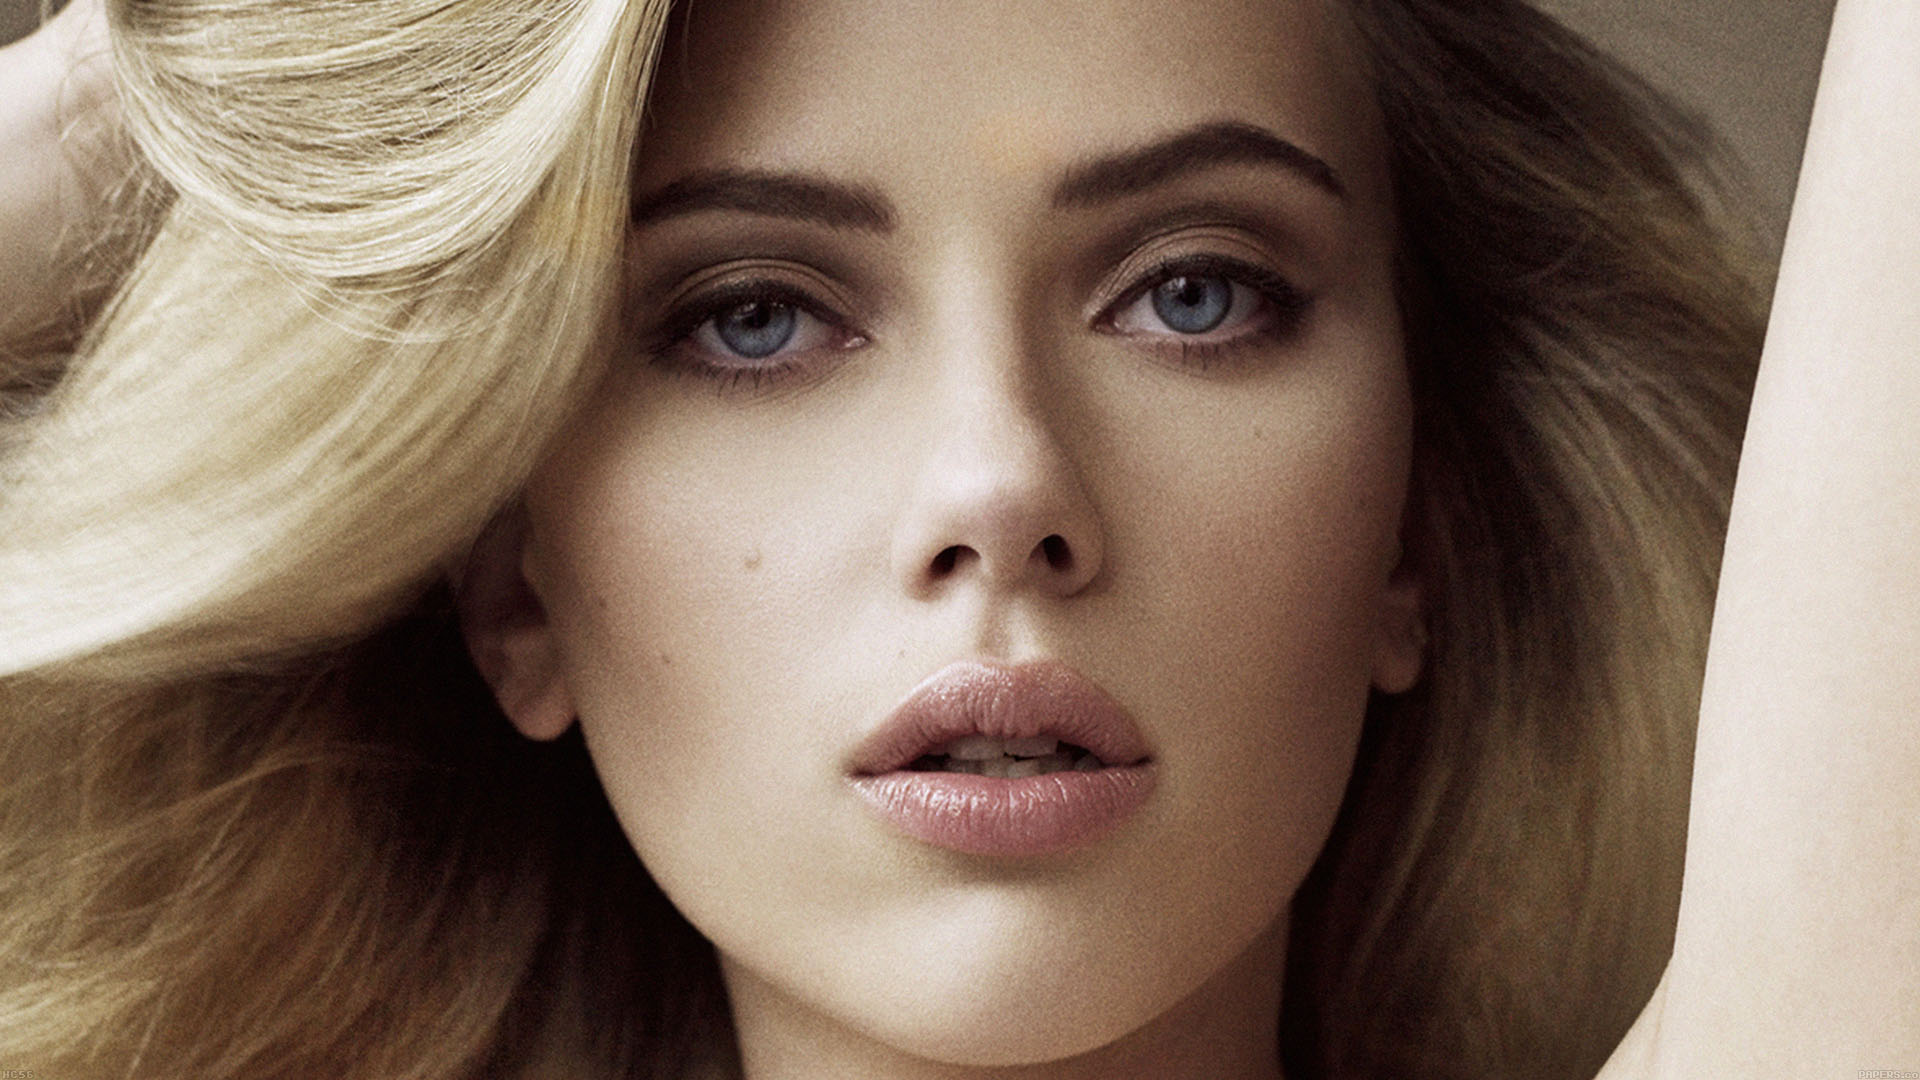 Fall Wallpaper For Iphone 7 Plus Hc56 Scarlett Johansson Sexy Celebrity Papers Co